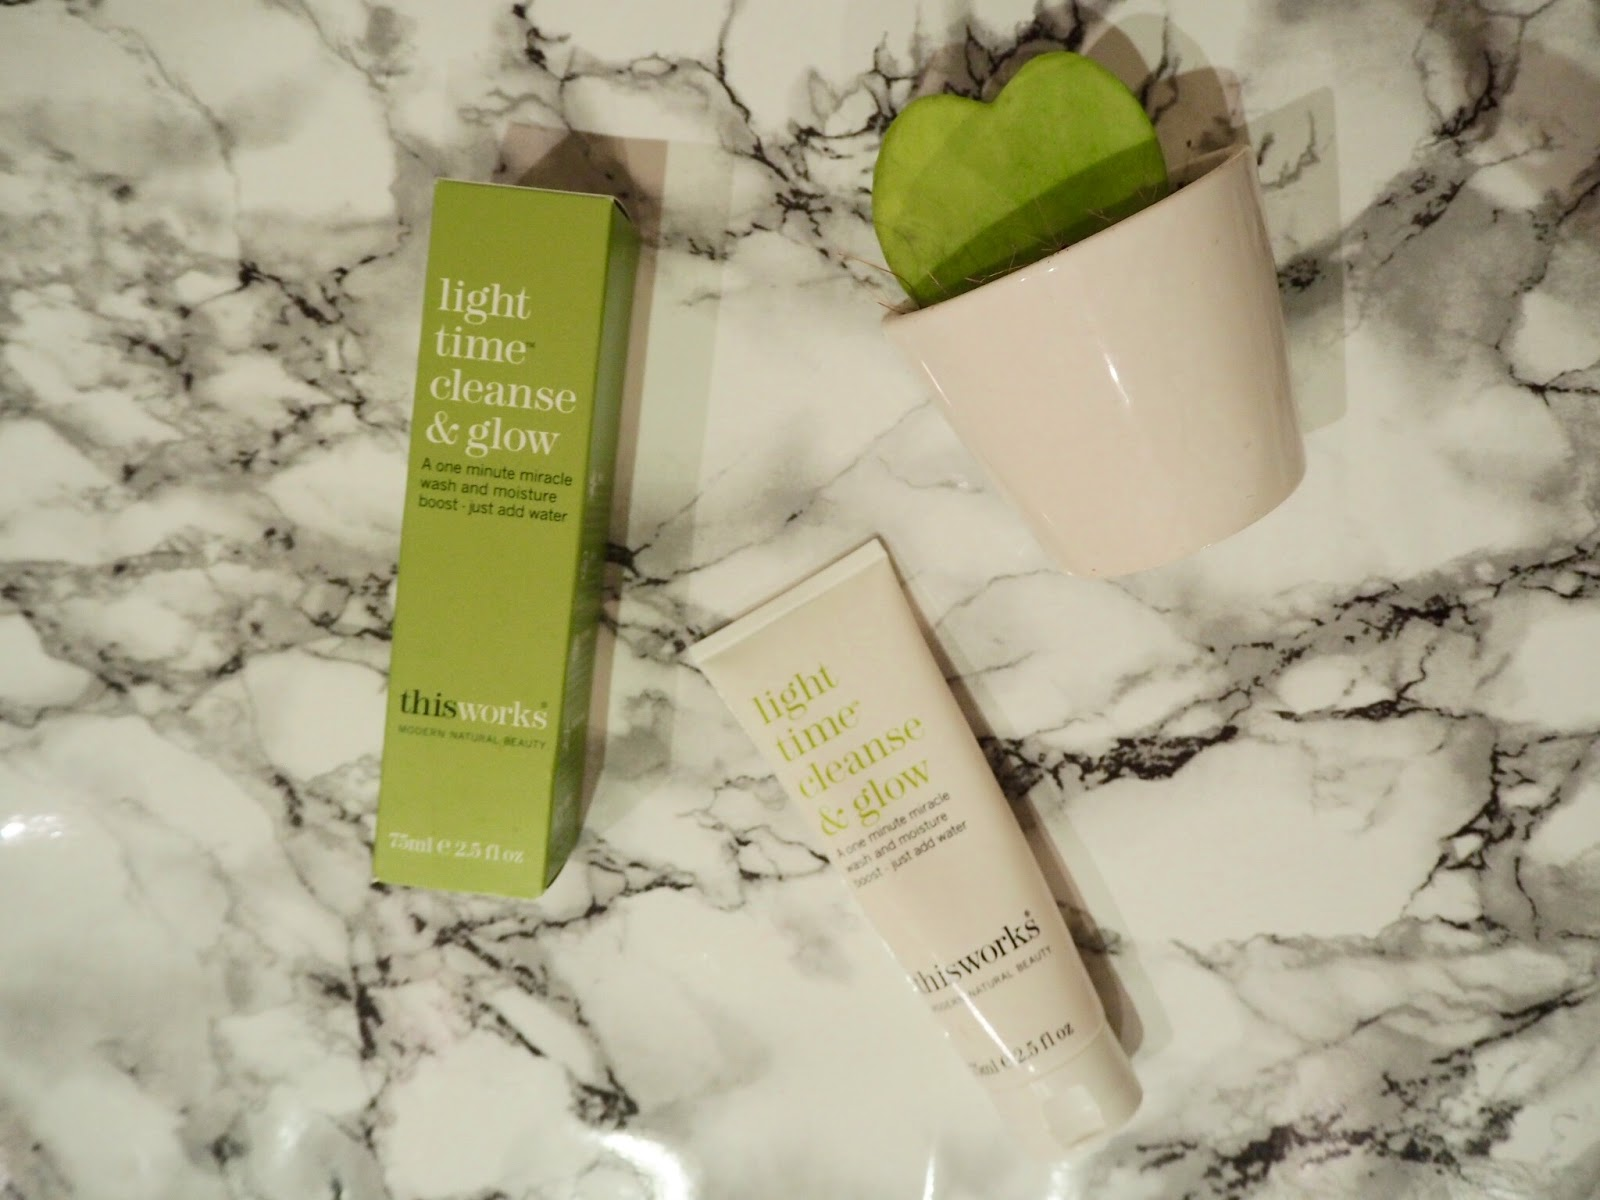 thisworks Light time cleanse & glow review